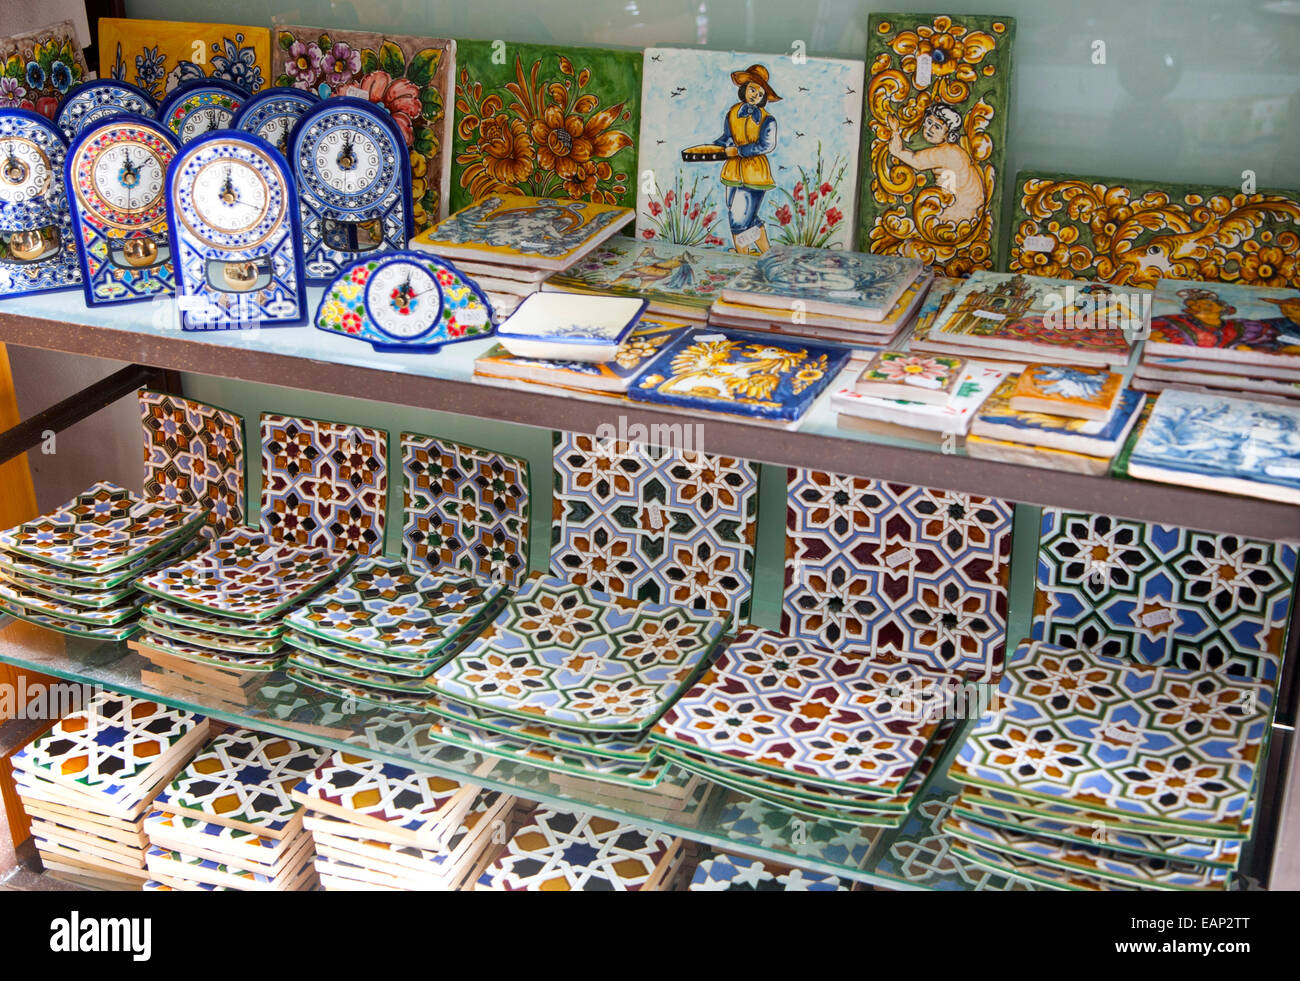 Sevilla Winkelen Display Of Tiles Inside Santa Ana Ceramic Tile Shop In